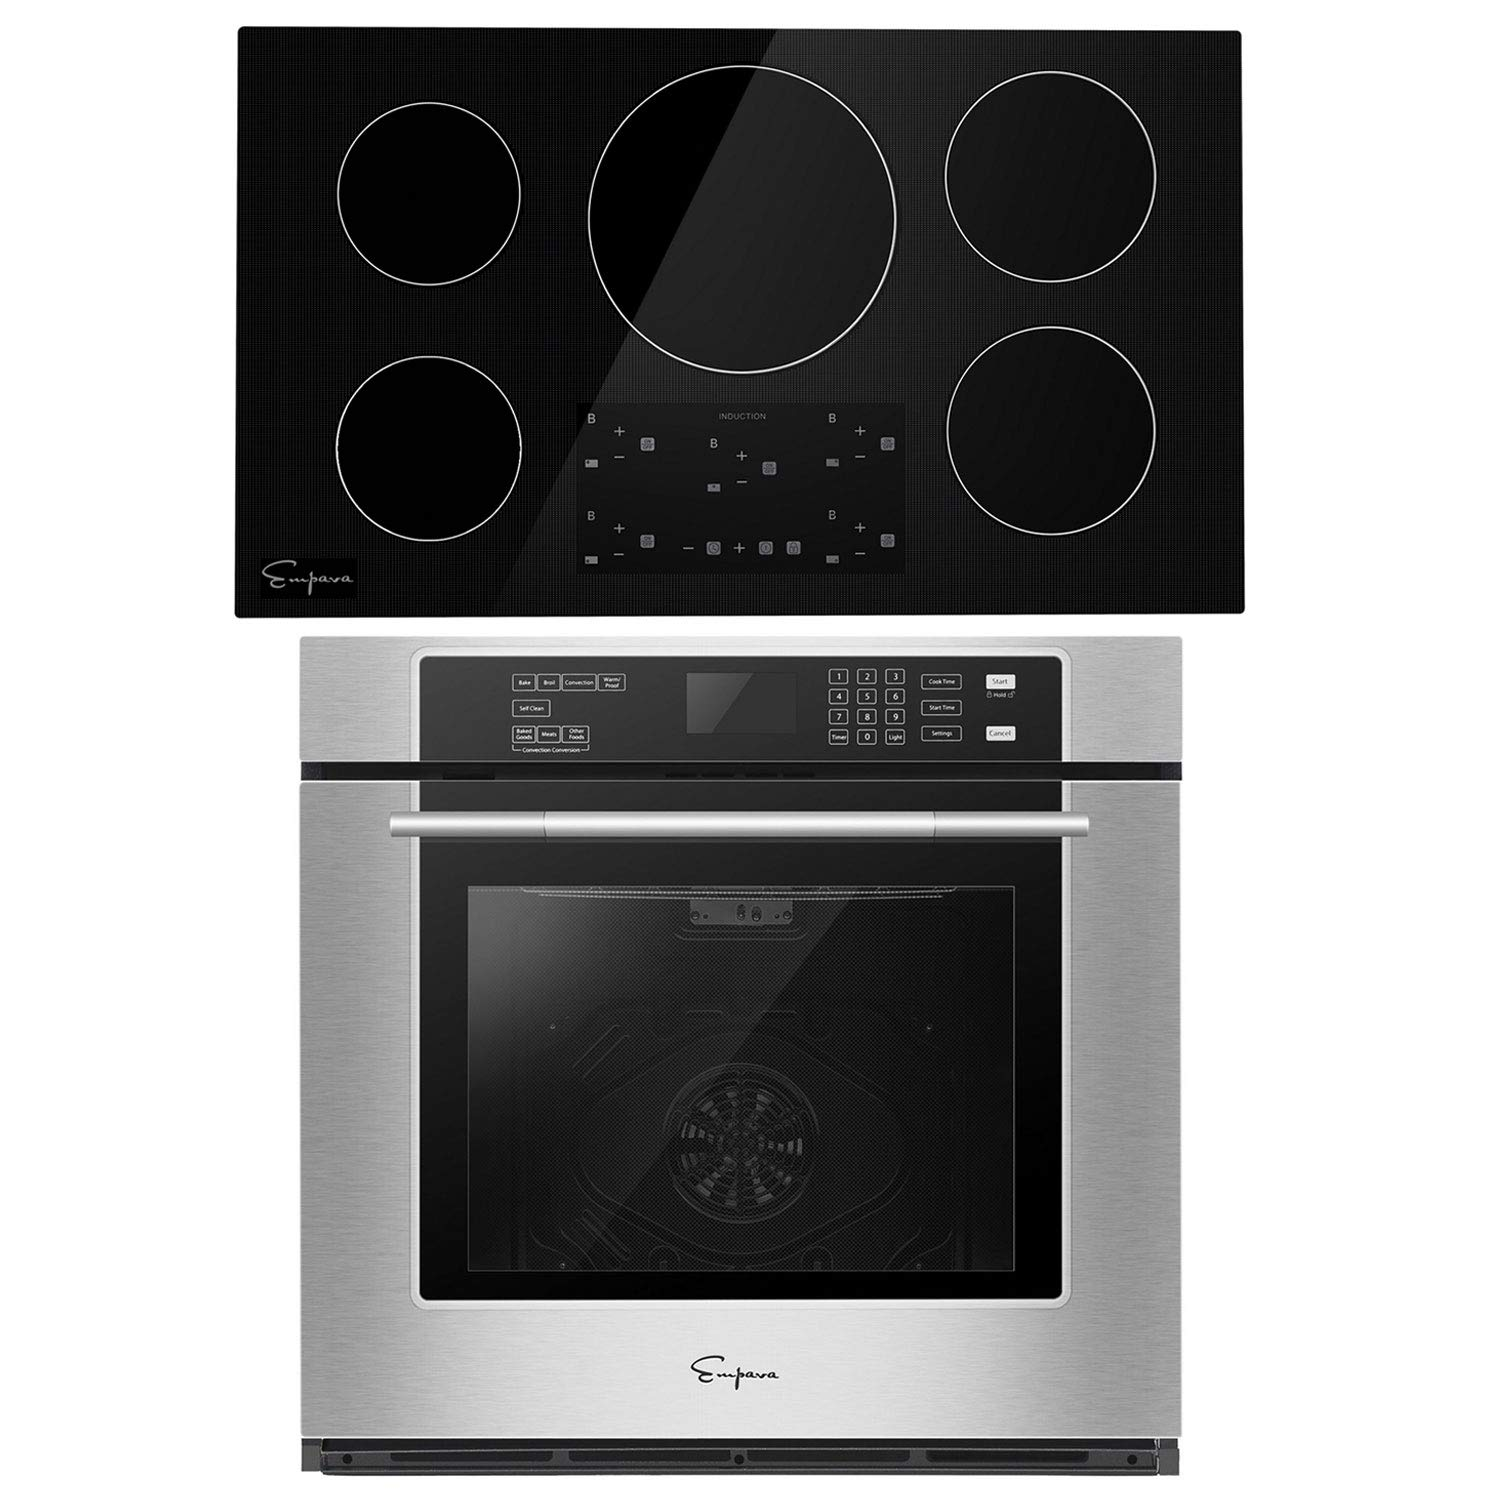 Empava 30 Inch Electric Single Wall Oven with Self-cleaning Convection Fan and 36 Inch Induction Cooktop with 4 Power Boost Burners Smooth Surface Vitro Ceramic Glass